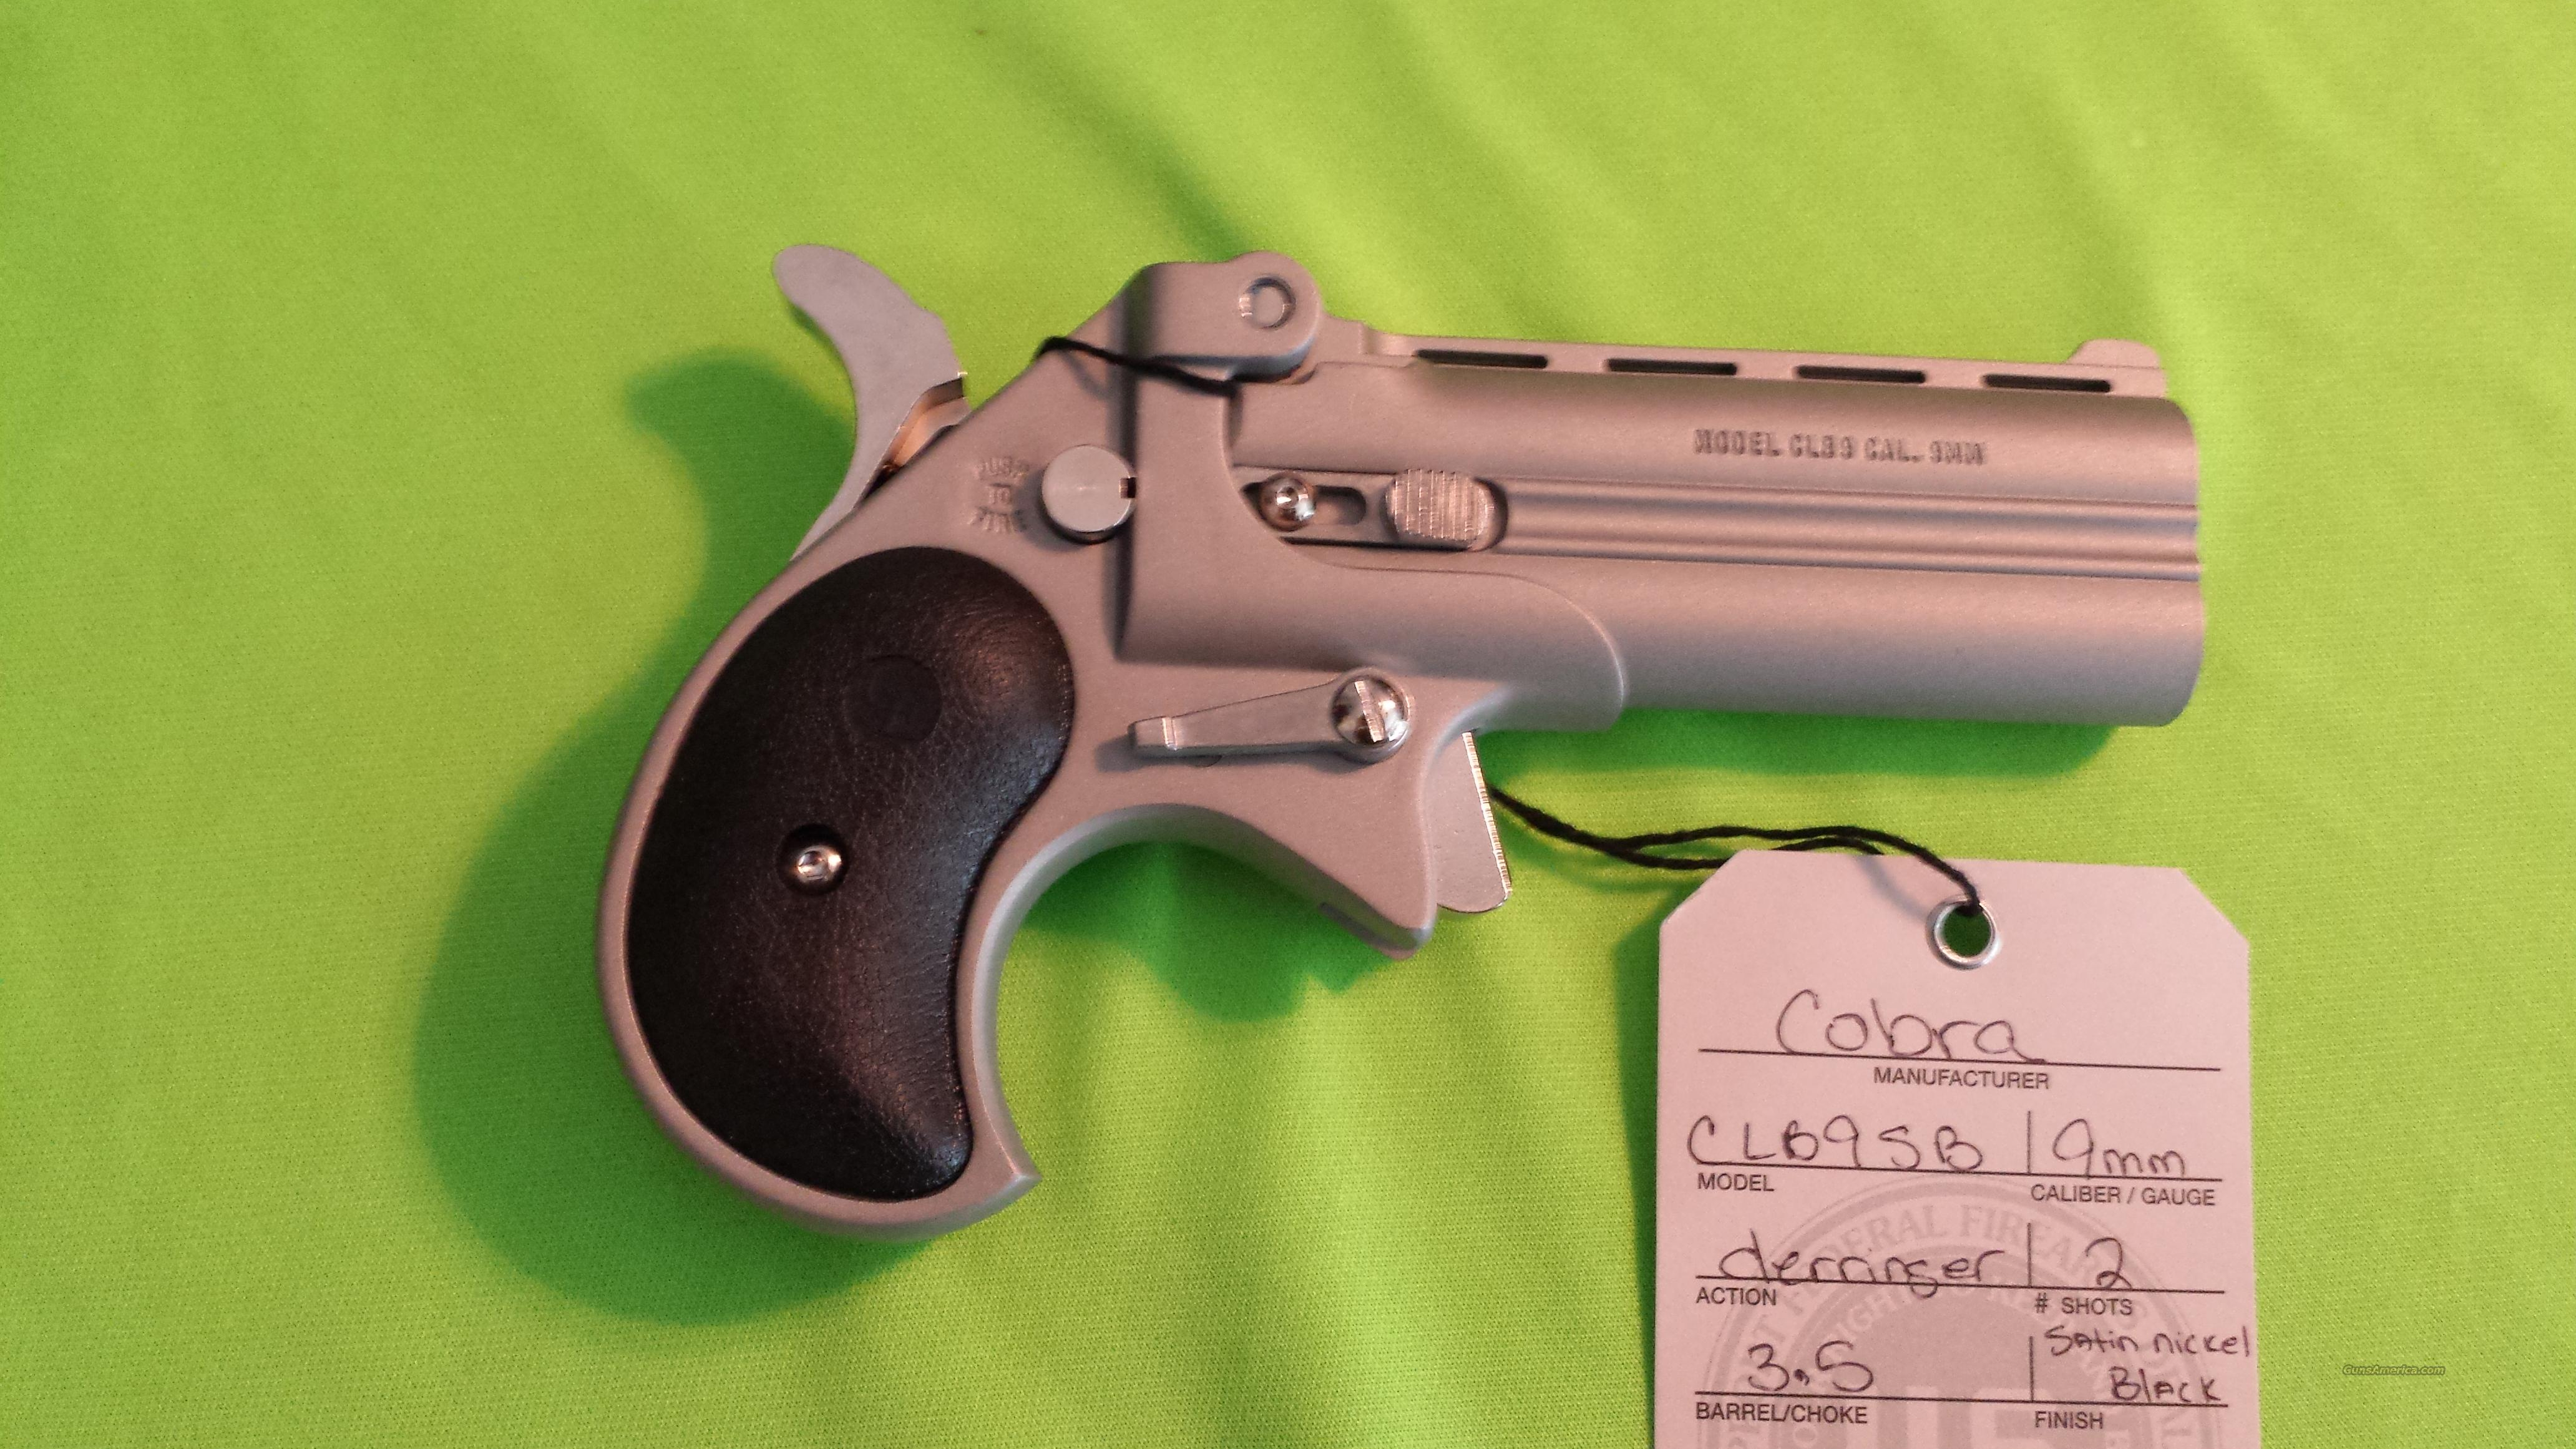 "COBRA LONG BORE DERRINGER 3.5"" 9MM SATIN NICKEL BLACK  Guns > Pistols > Cobra Derringers"